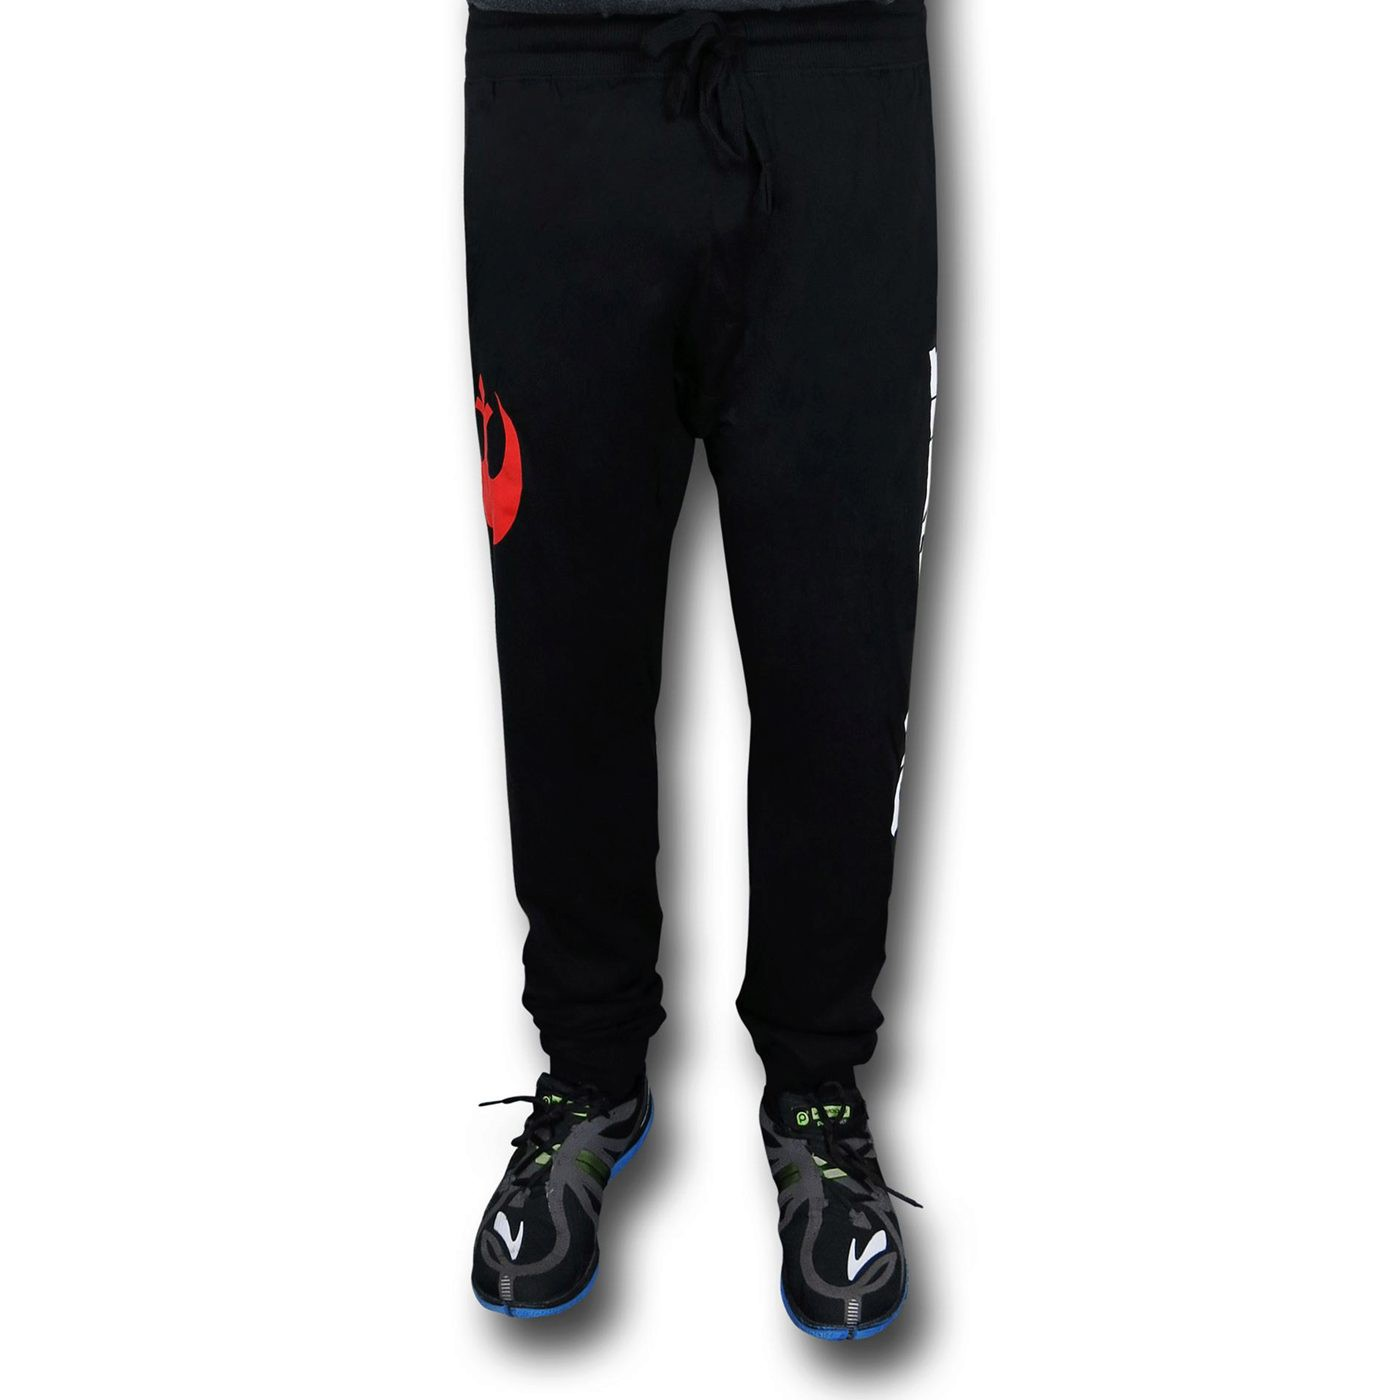 Star Wars Rebel Jogging Pants